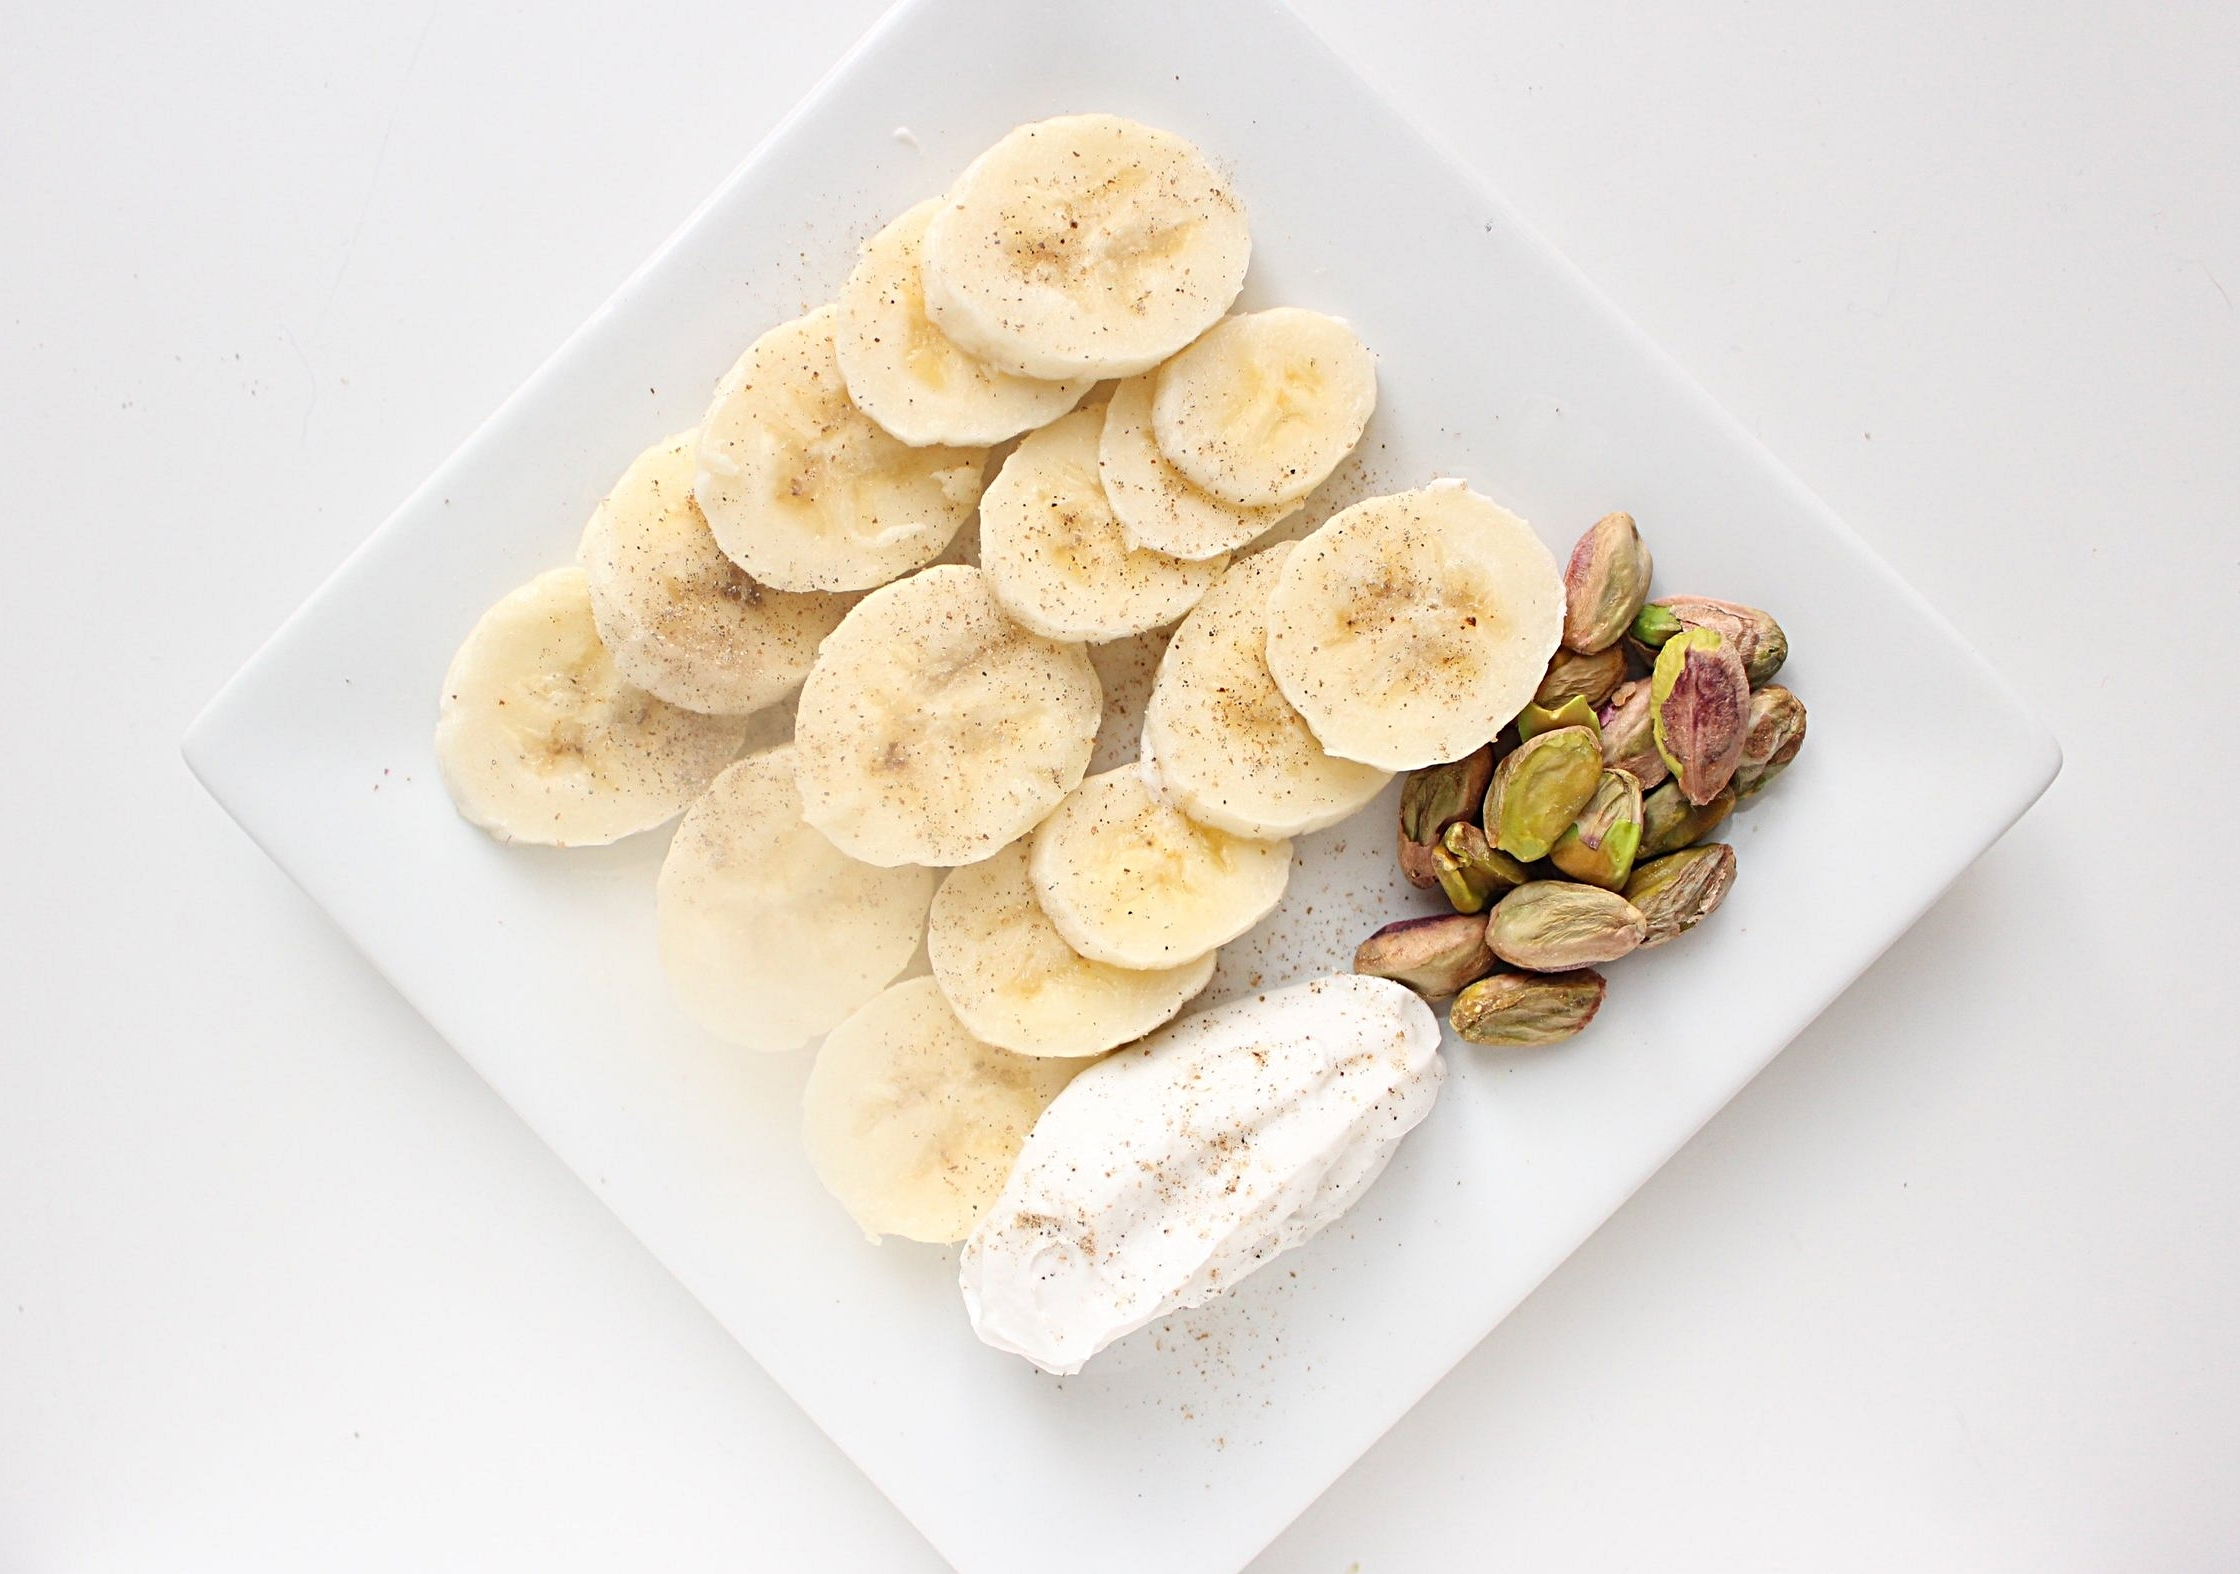 Bananas with cardamom and pistachios | Me & The Moose. Dress up your fruit with some nuts and coconut cream for more protein and fat to keep you full. #meandthemoose #whole30 #whole30recipes #bananas #snacks #snackrecipes #coconutcream #pistachios